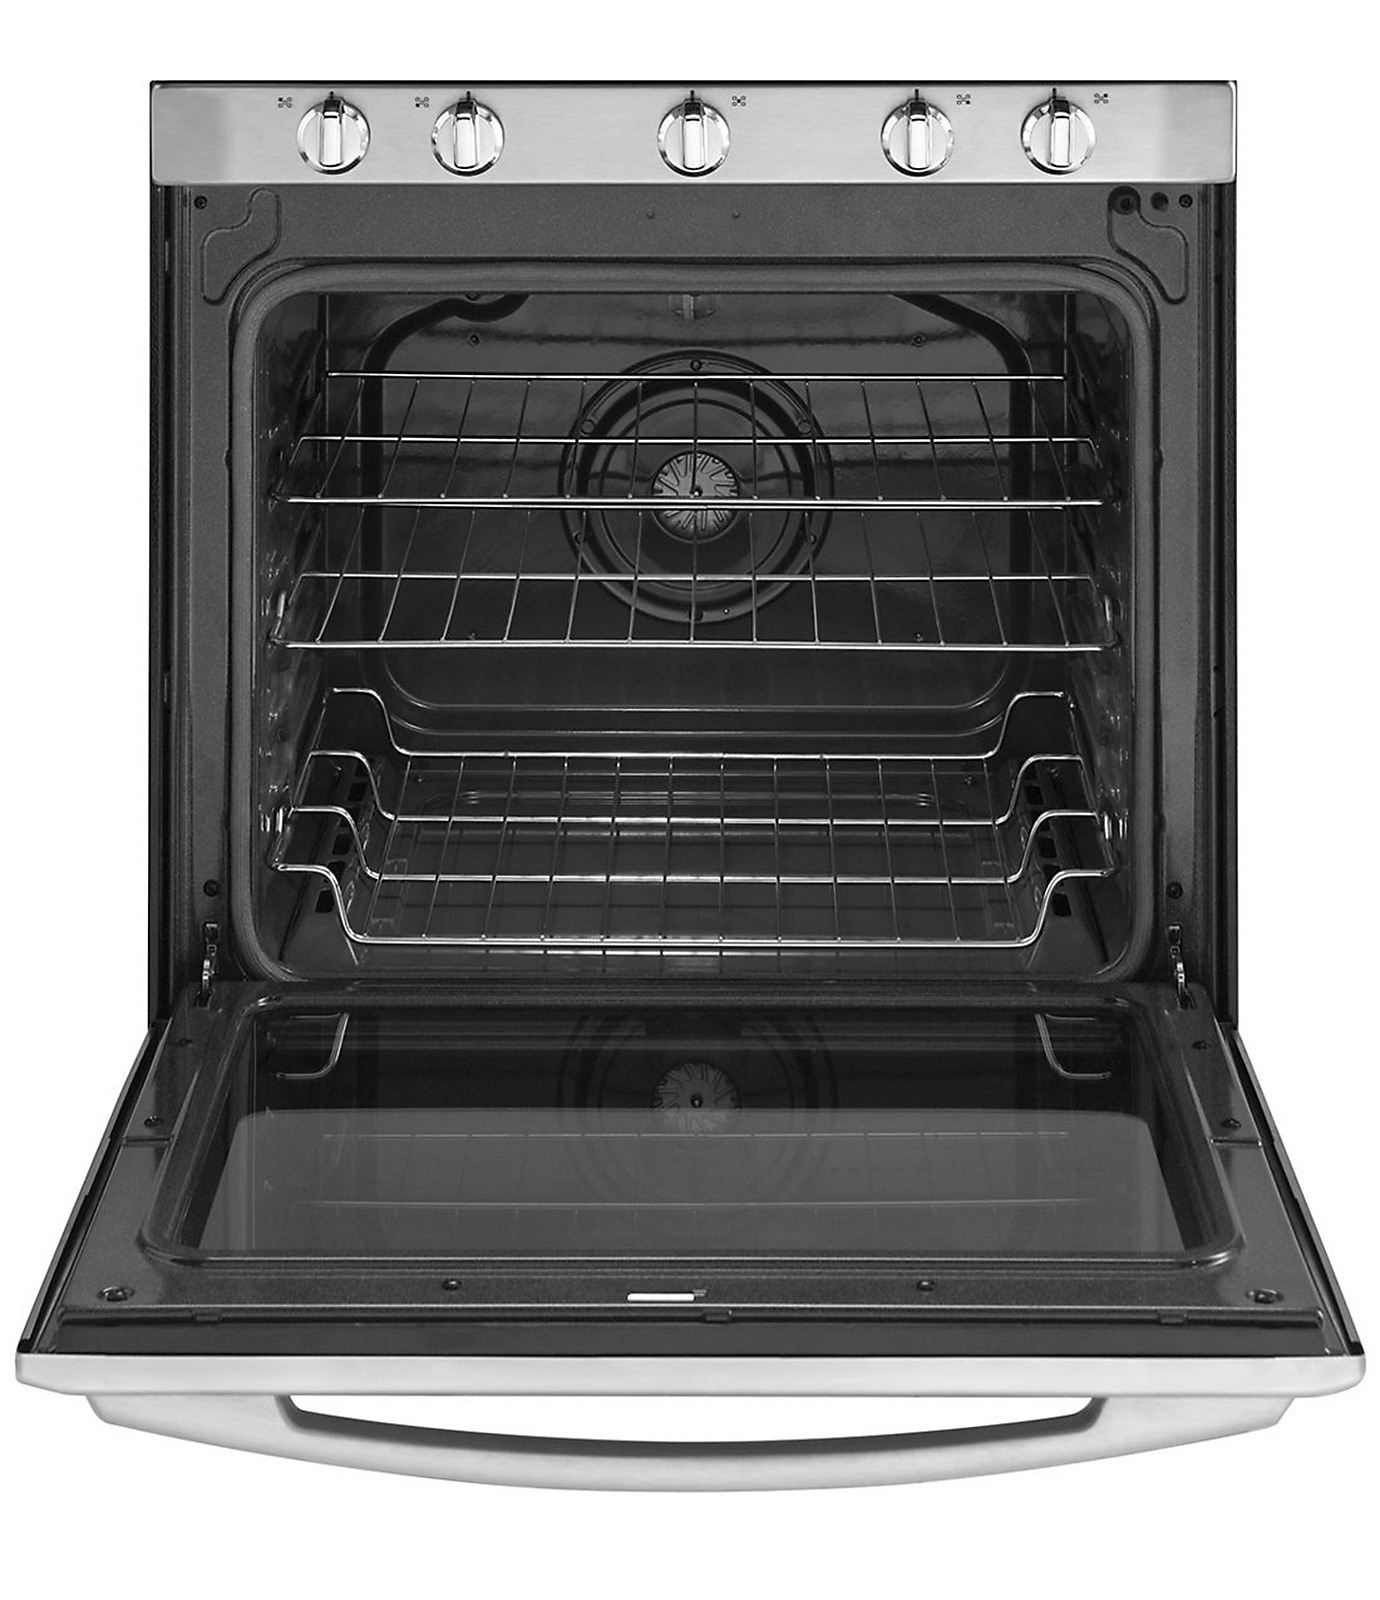 Maytag 5.8 cu. ft. Freestanding Gas Range w/ Speed Heat™ Burner - Black